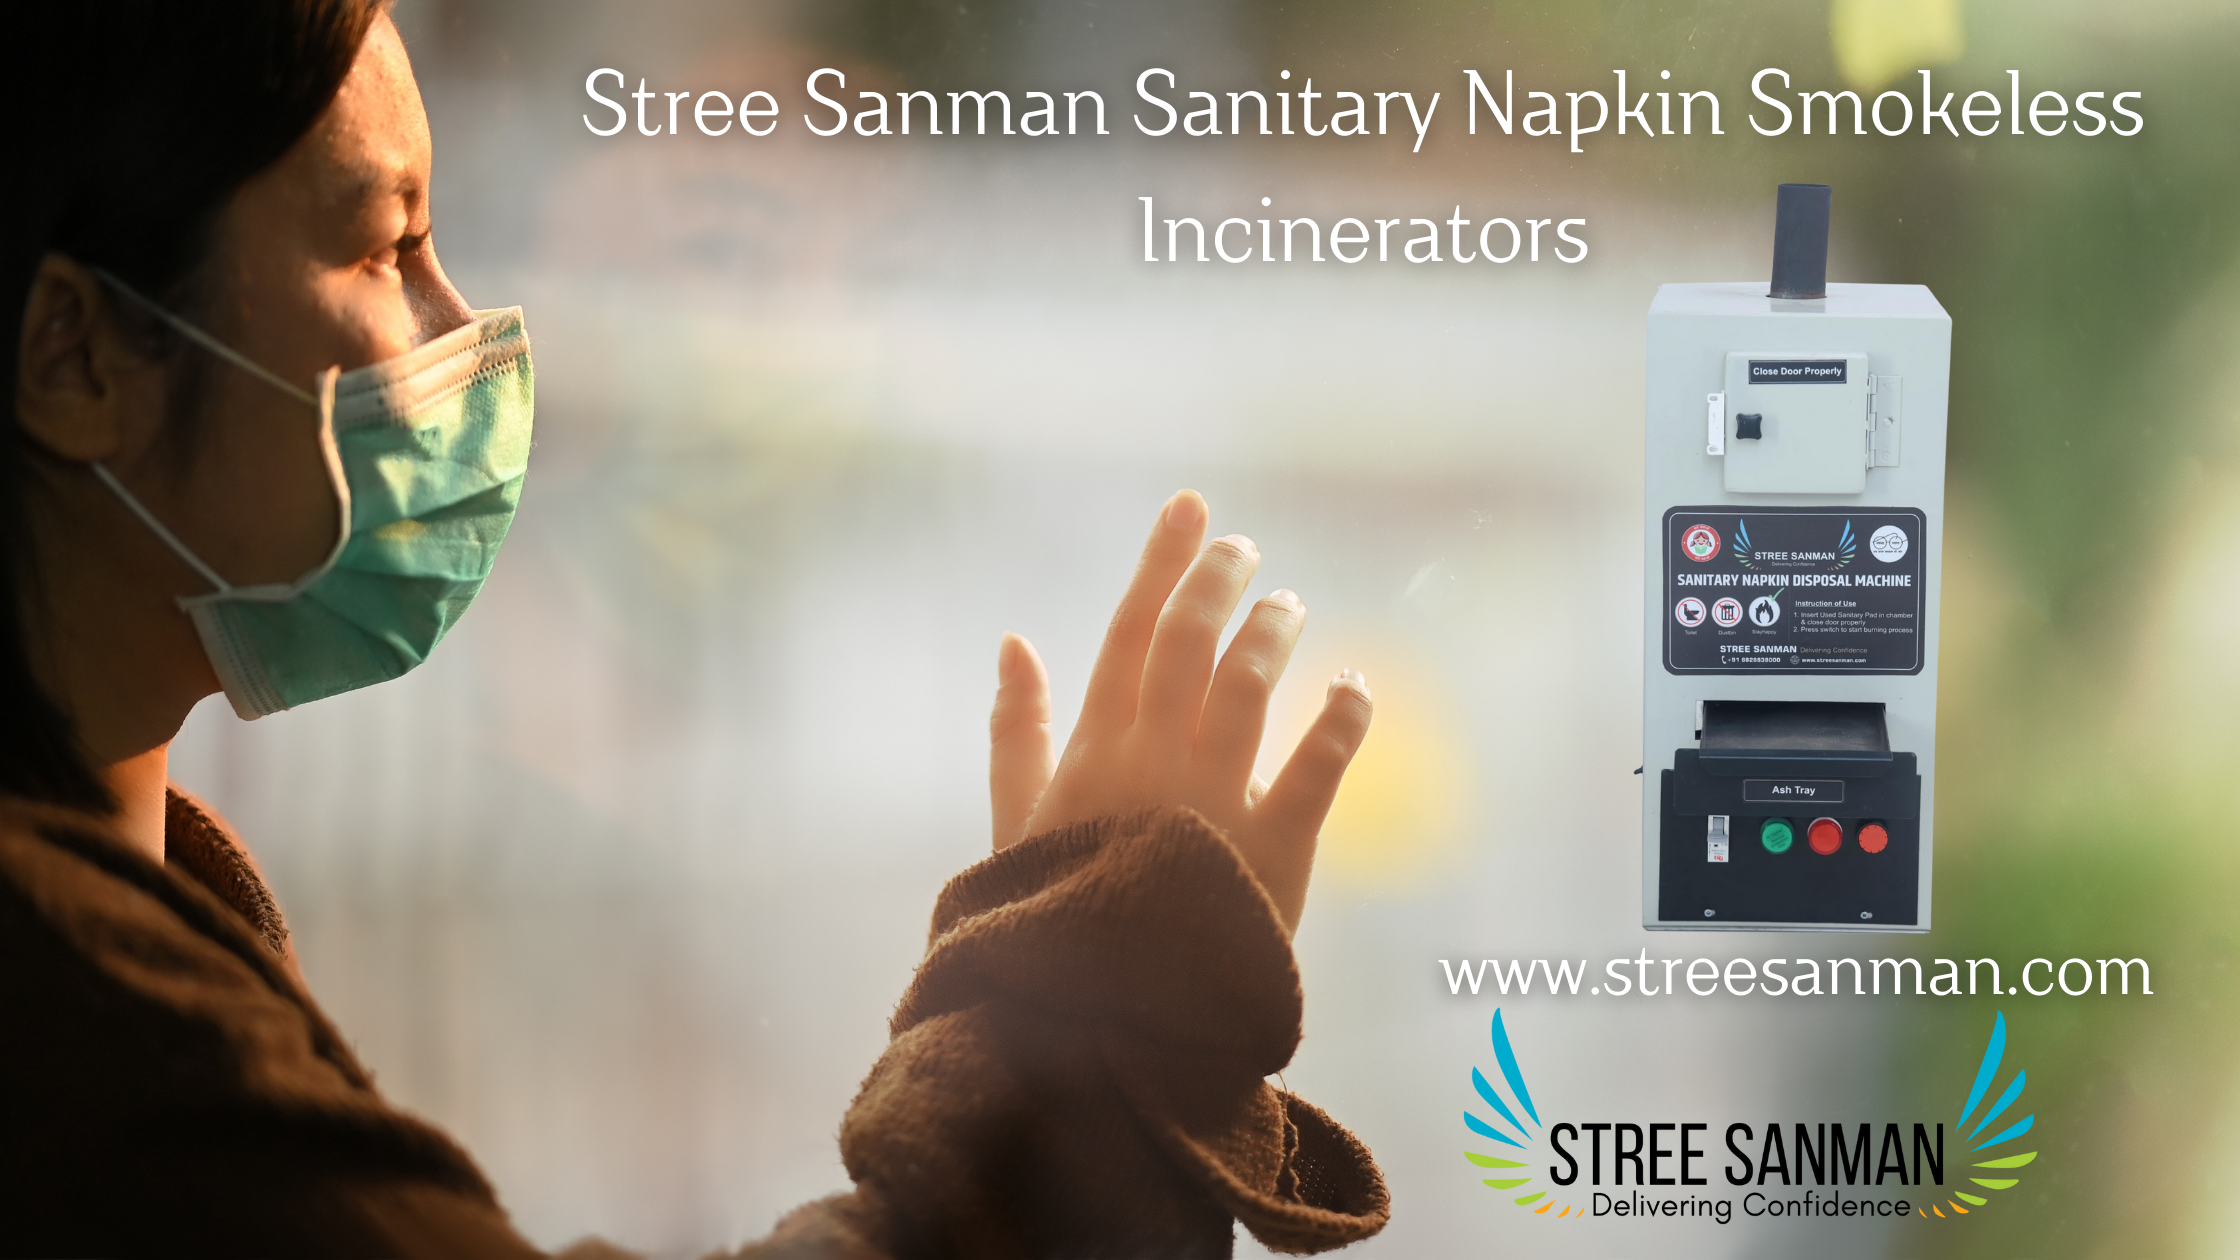 Use of Sanitary Napkin Incinerator during Pandemic.